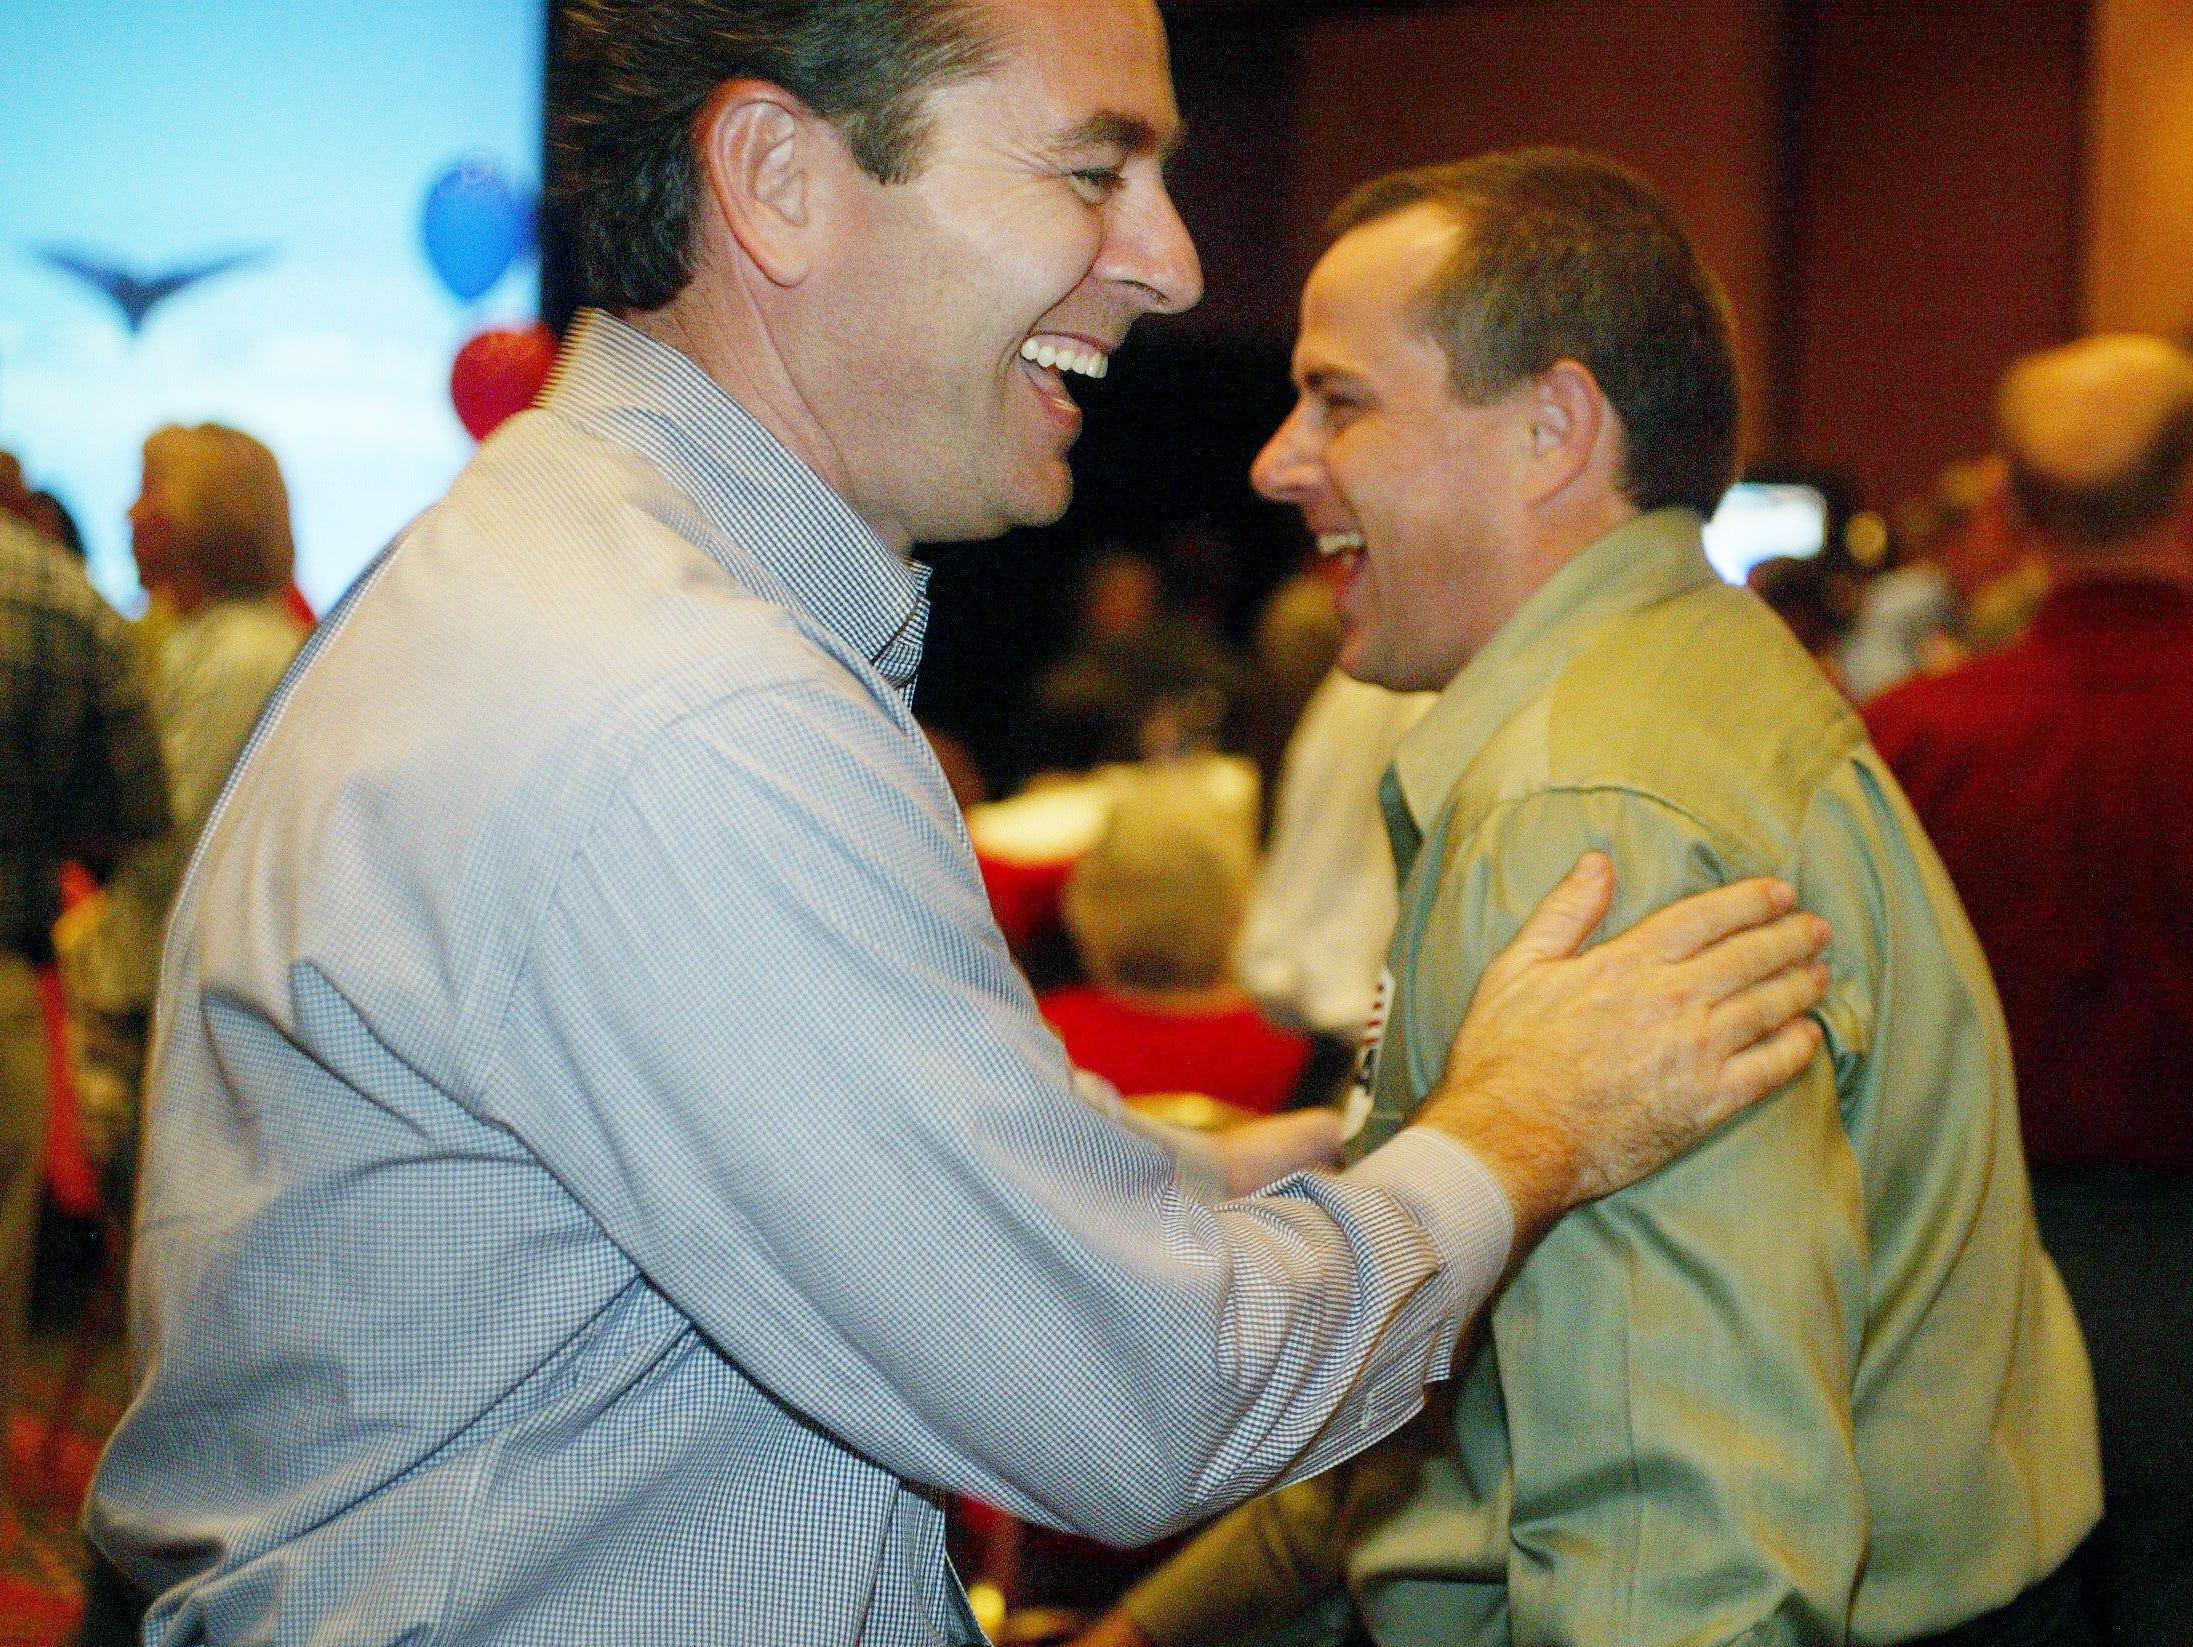 Glen Casada, left, greets supporters during the GOP victory party at the Embassy Suites in Cool Springs on Nov. 2, 2004.